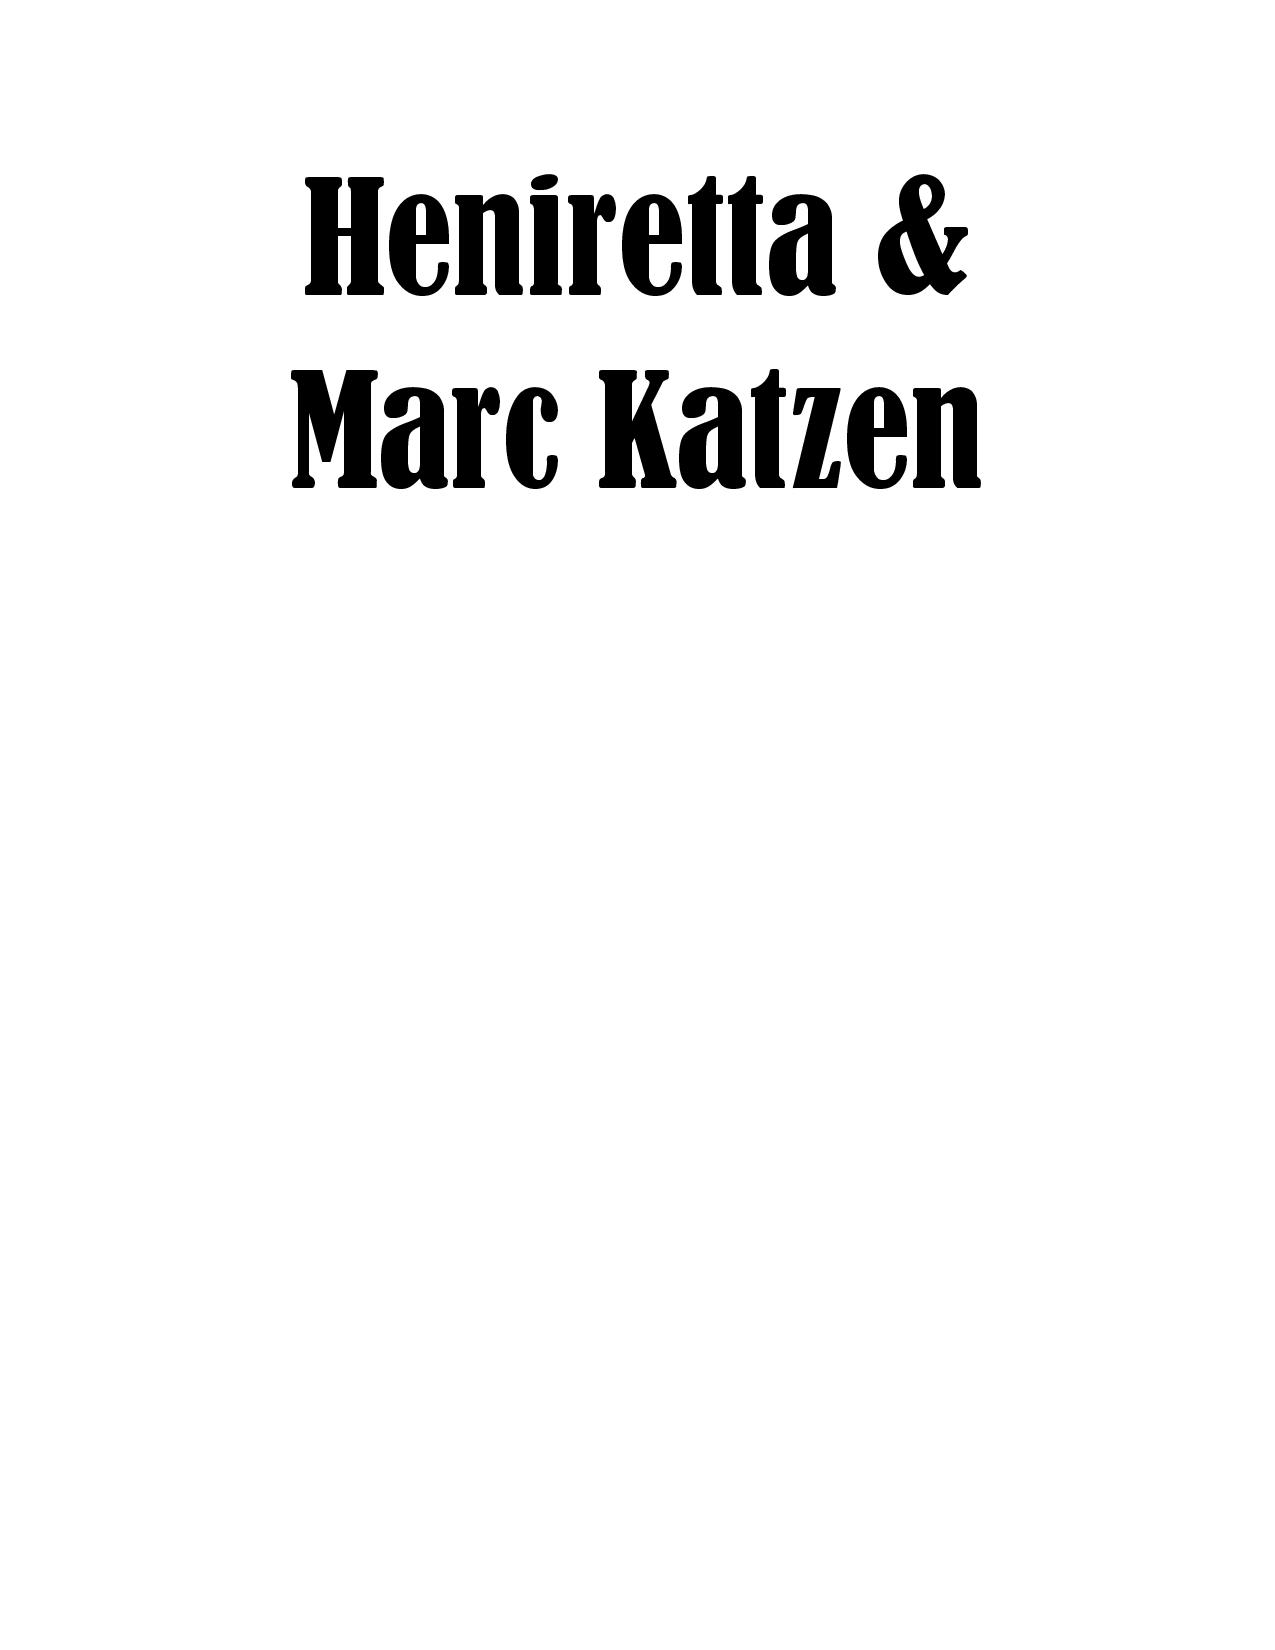 Henrietta and Marc Katzen-page-001